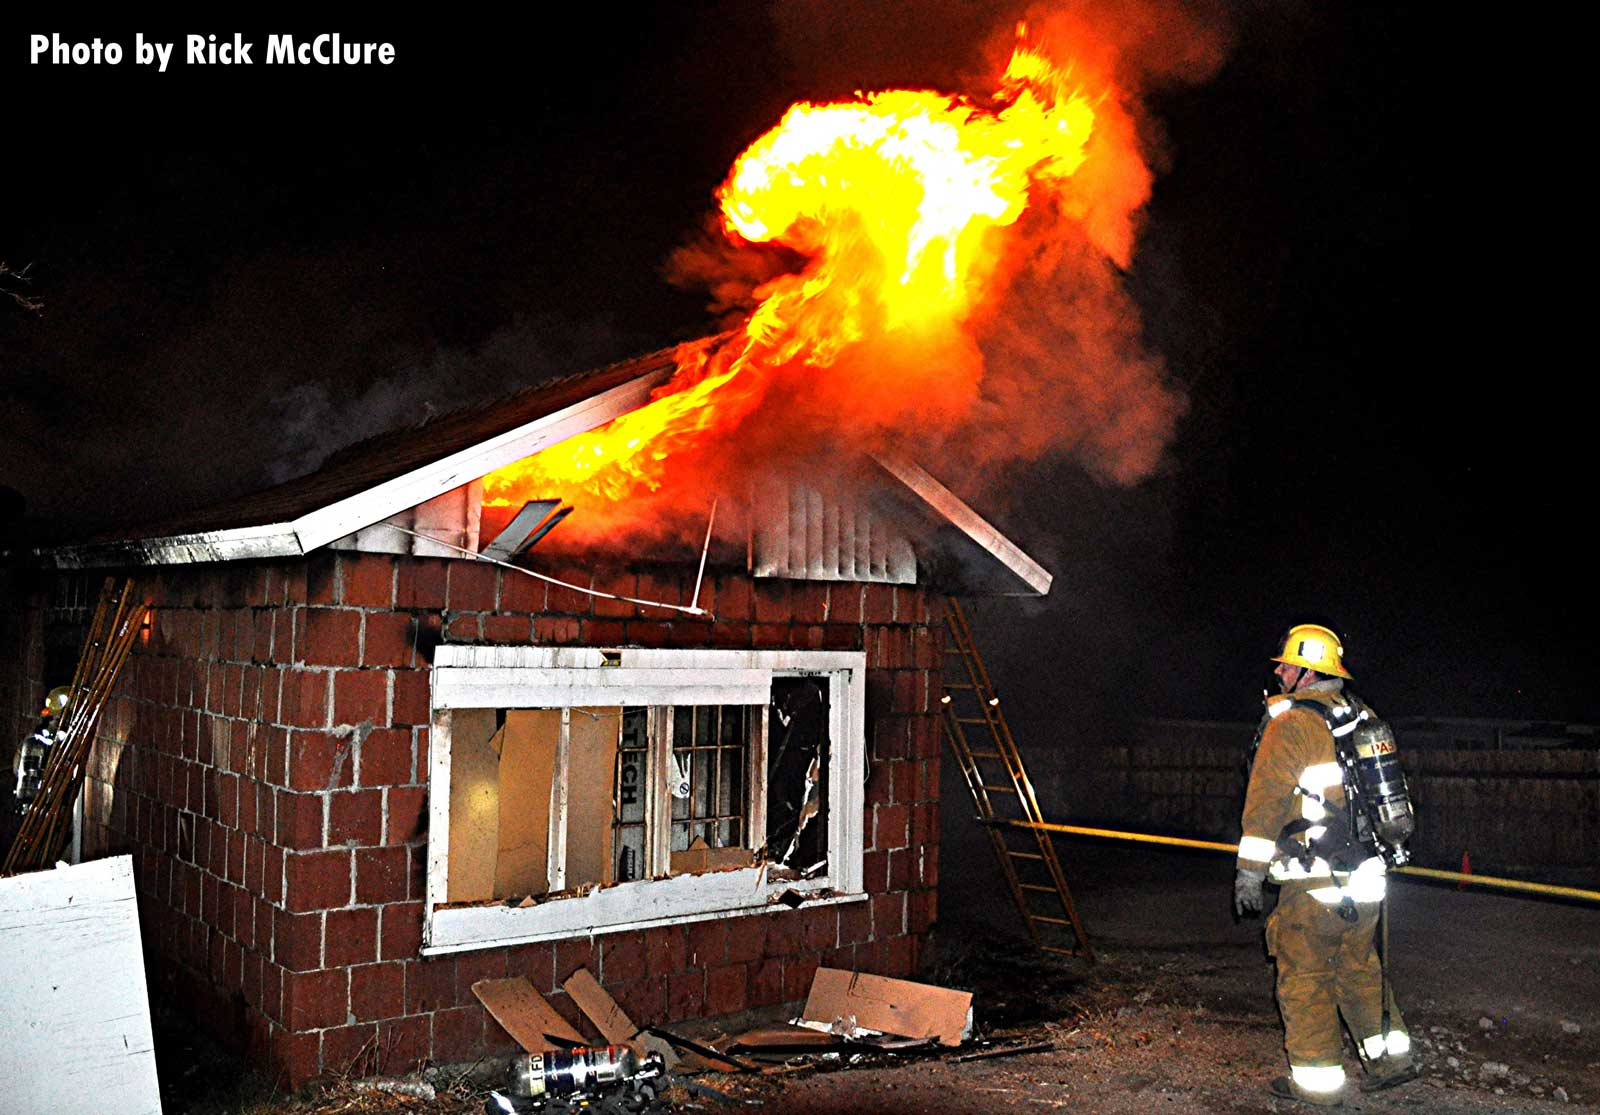 A firefighter with a hook and flames venting from the building